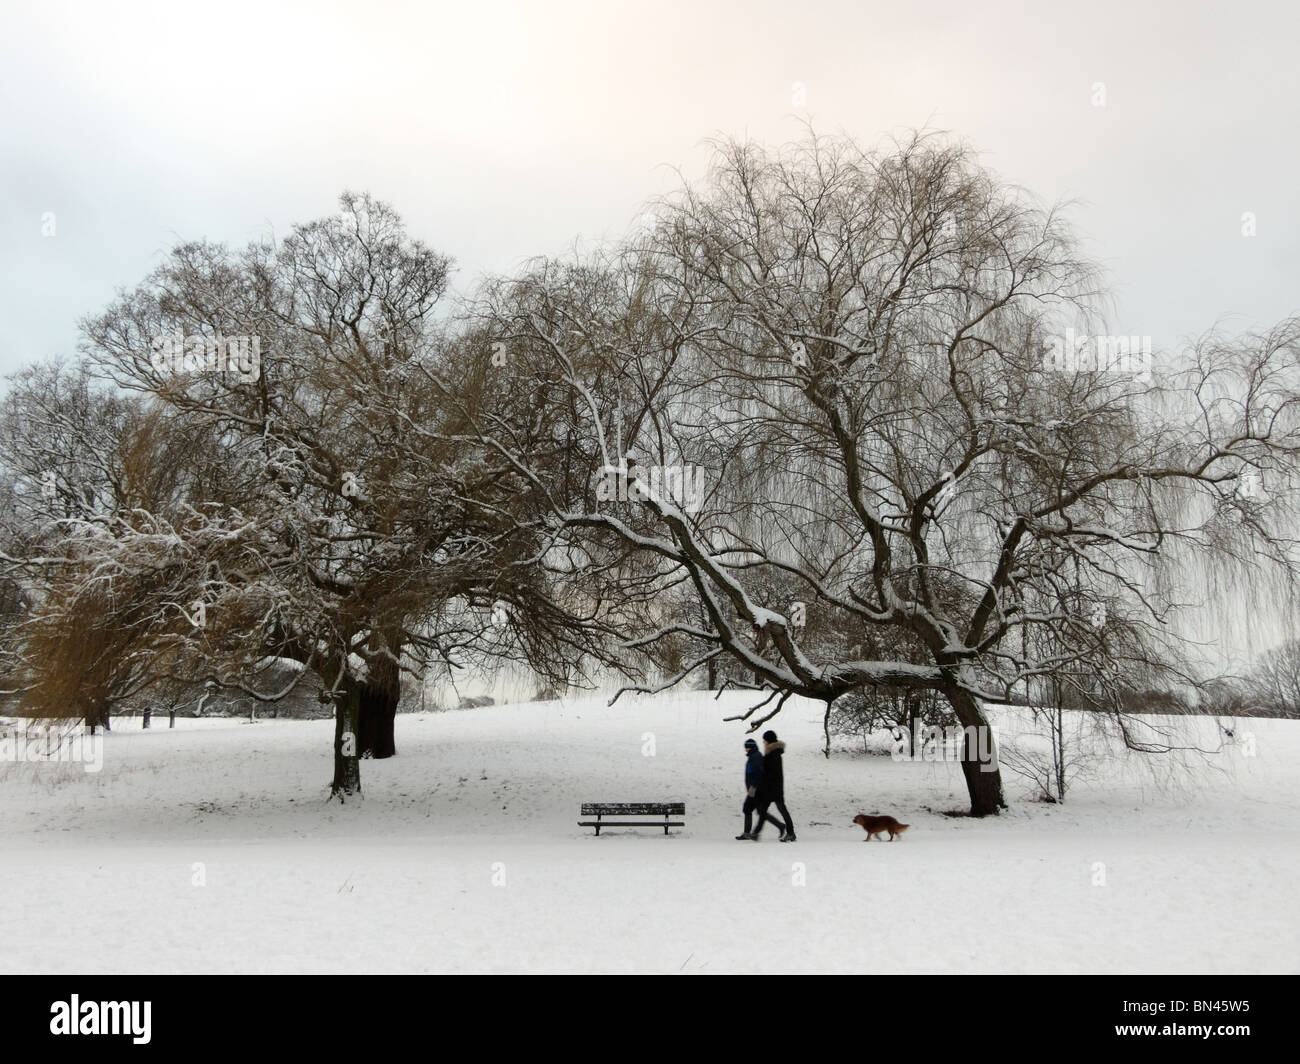 Snow and ice in Winter on Hampstead Heath ponds in London England UK - Stock Image